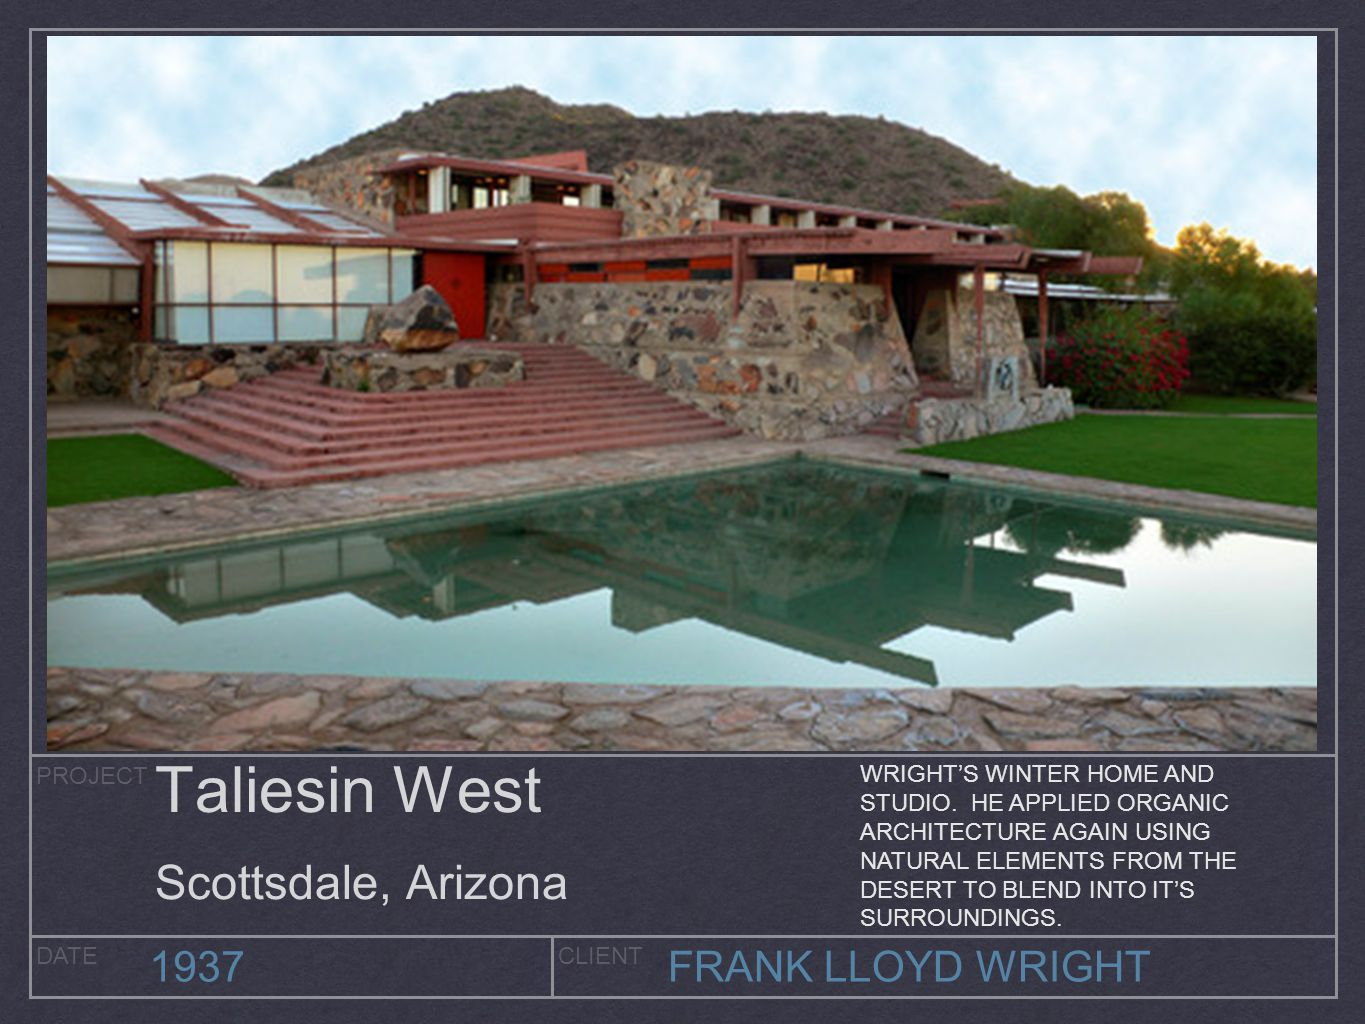 PROJECT DATECLIENT 1937FRANK LLOYD WRIGHT Taliesin West Scottsdale, Arizona WRIGHT'S WINTER HOME AND STUDIO. HE APPLIED ORGANIC ARCHITECTURE AGAIN USI